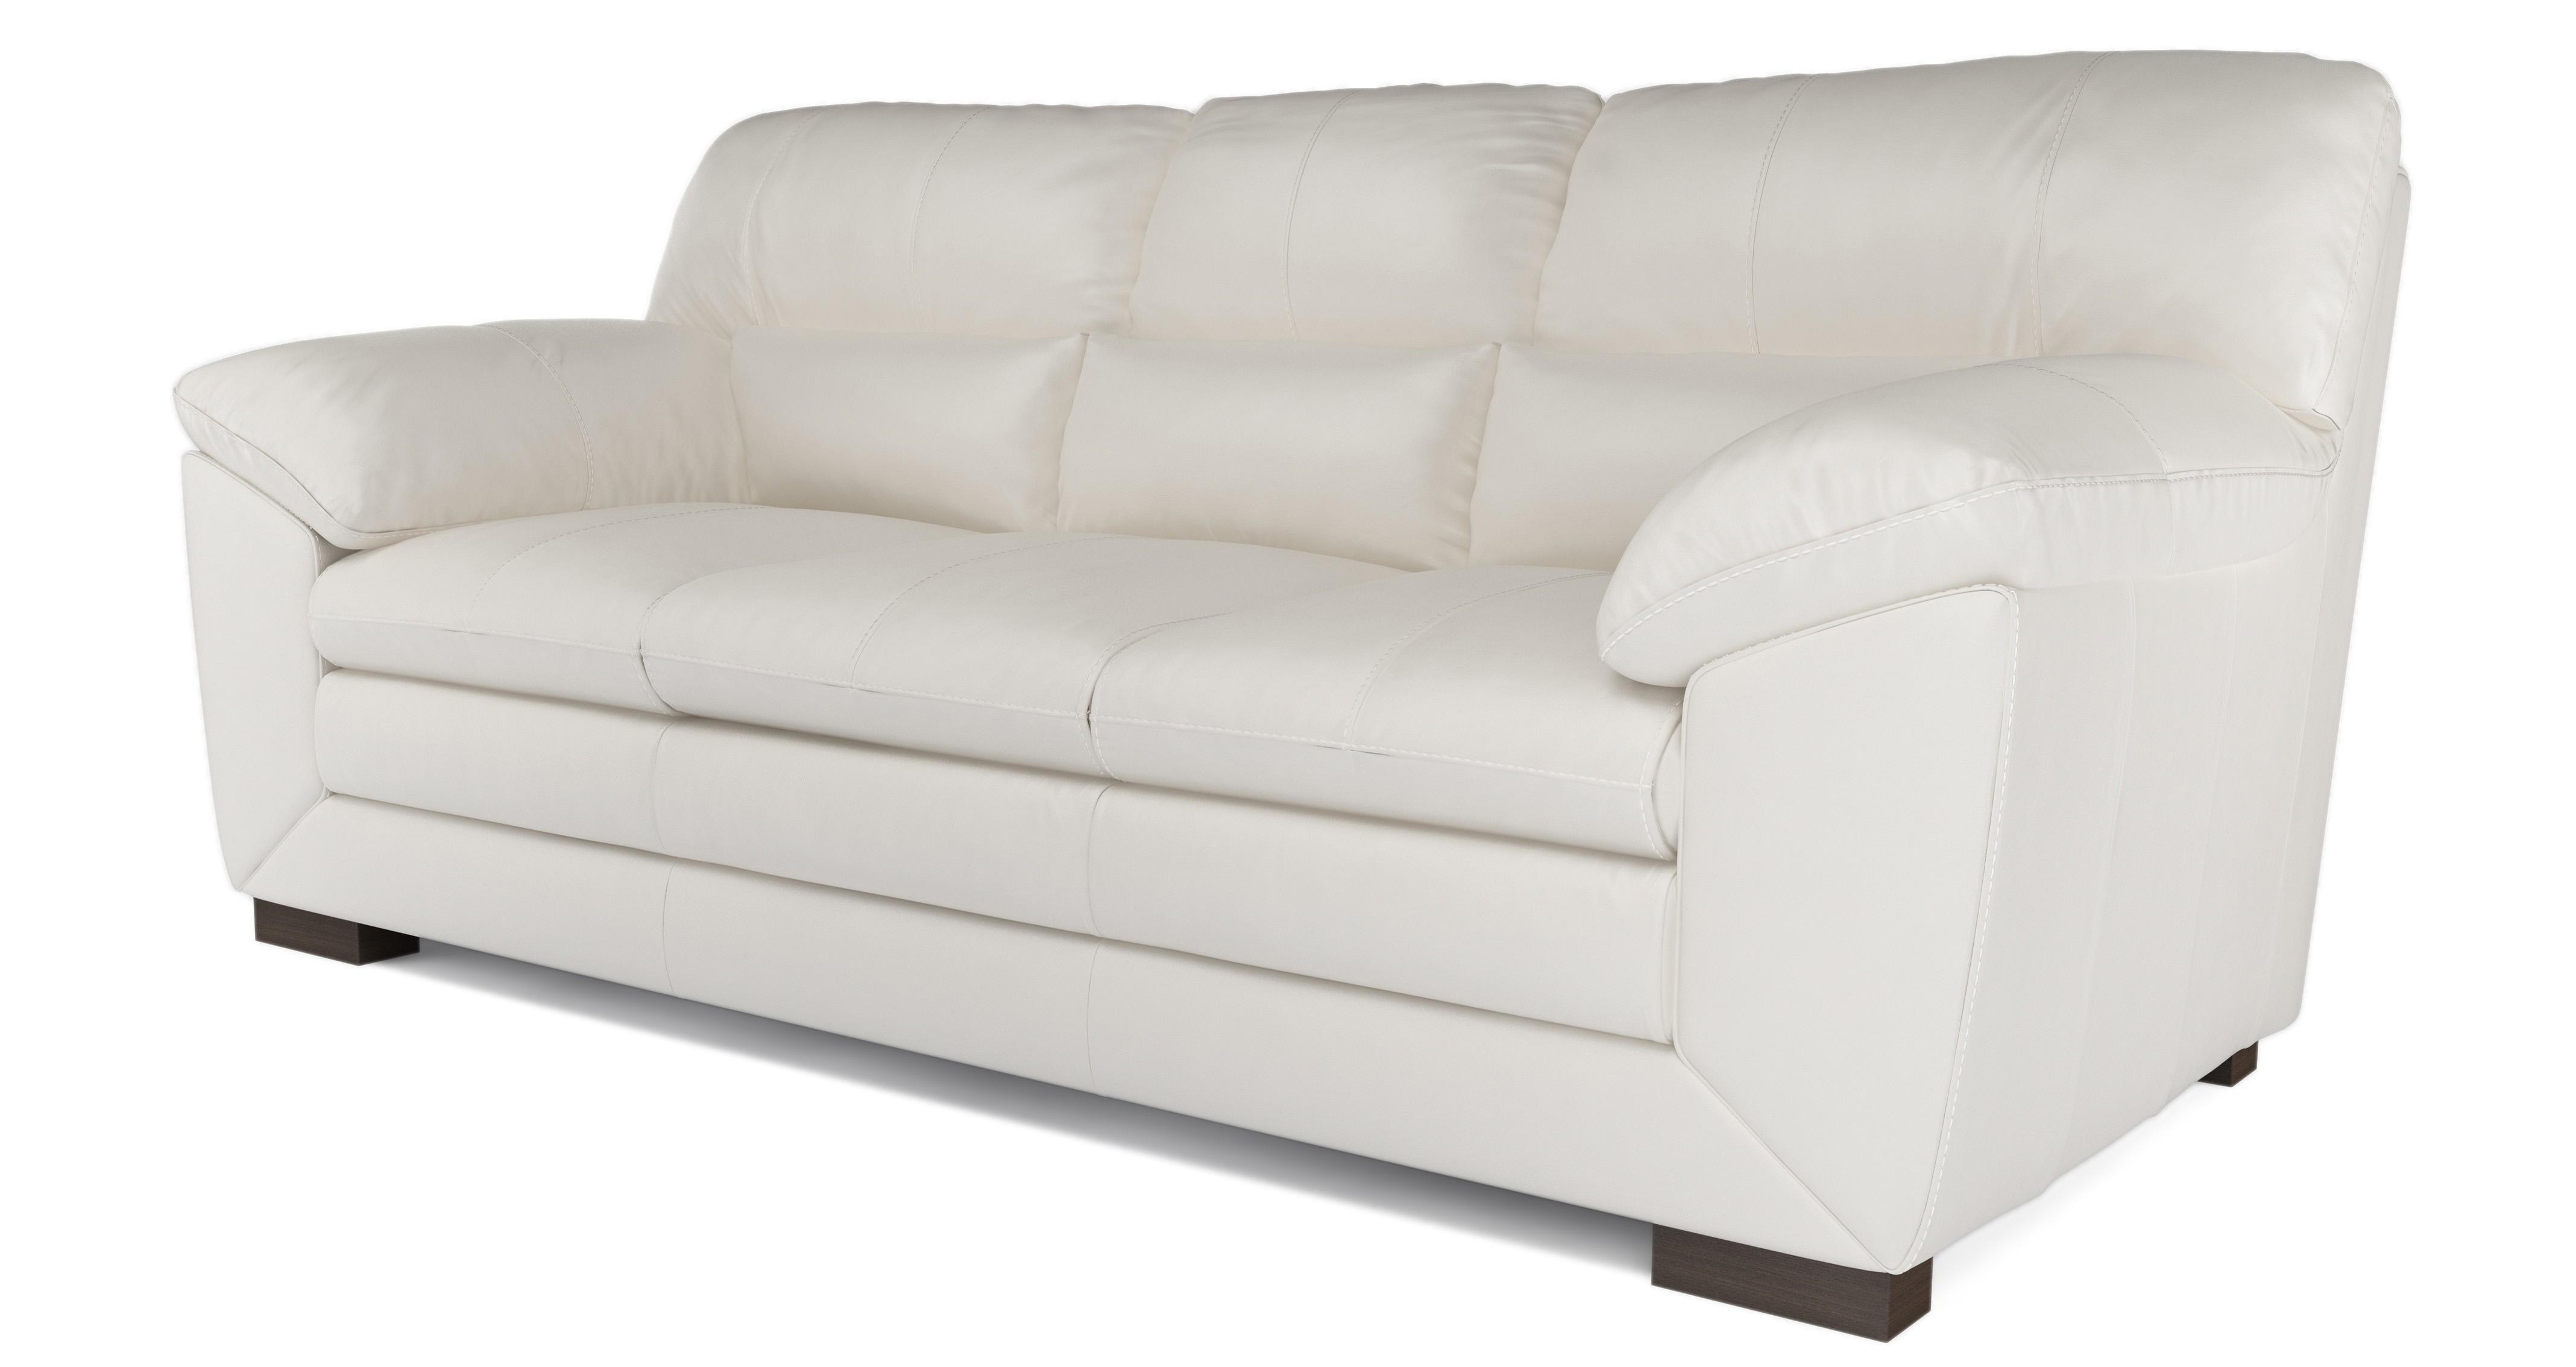 new sofas dfs cheap sofa sydney valiant aspen white leather 3 and 2 seater ebay